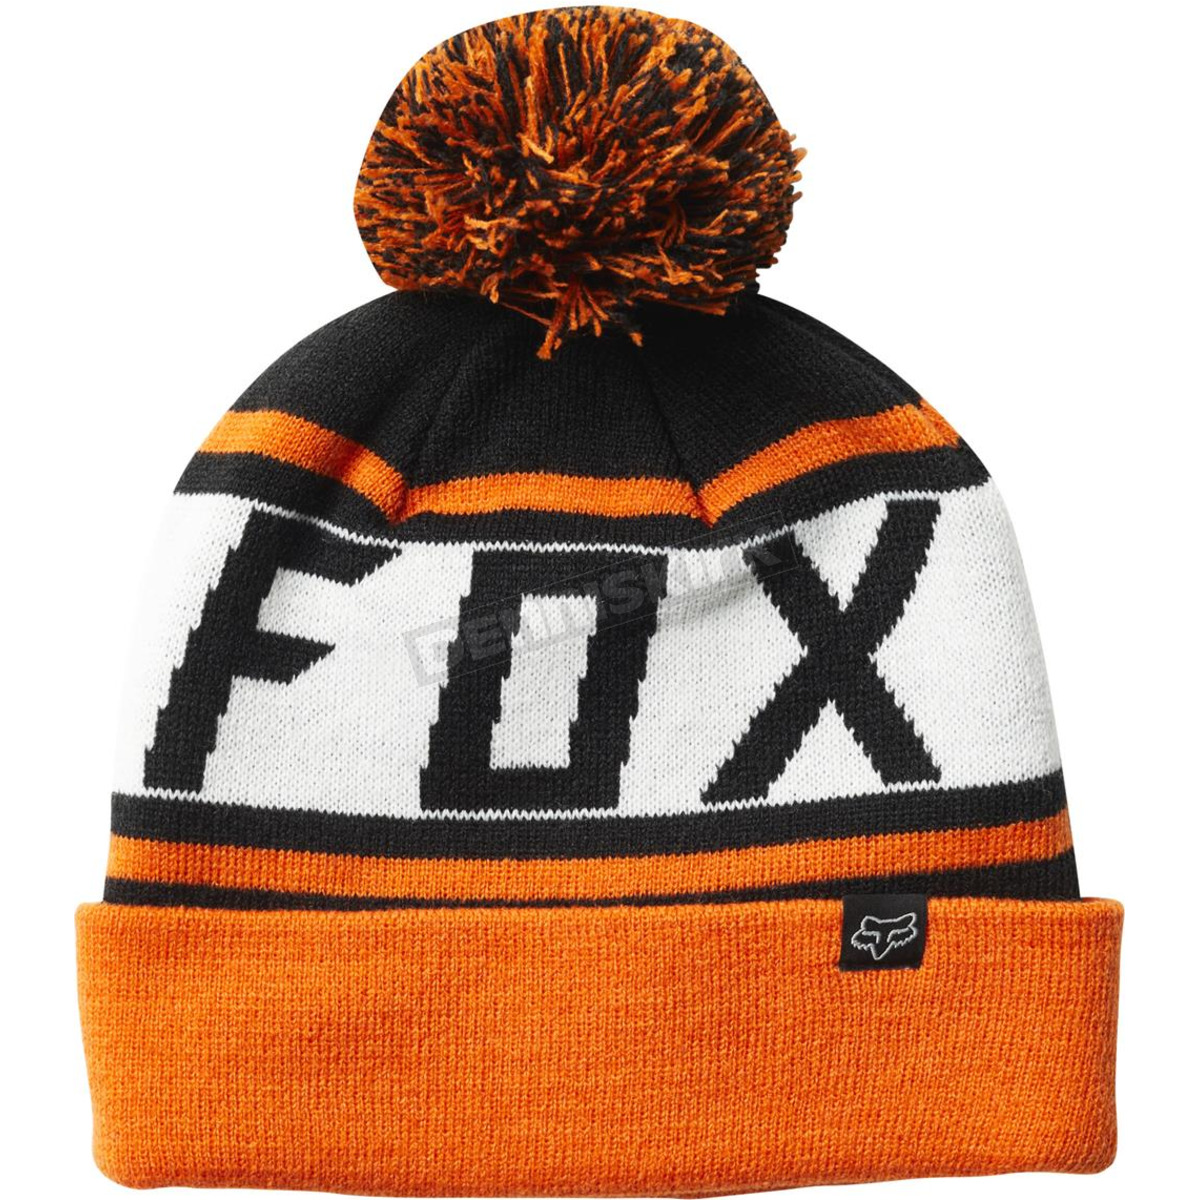 03756c1db227ff Fox Black/Orange Throwback Beanie - 22255-016-OS Dirt Bike ...